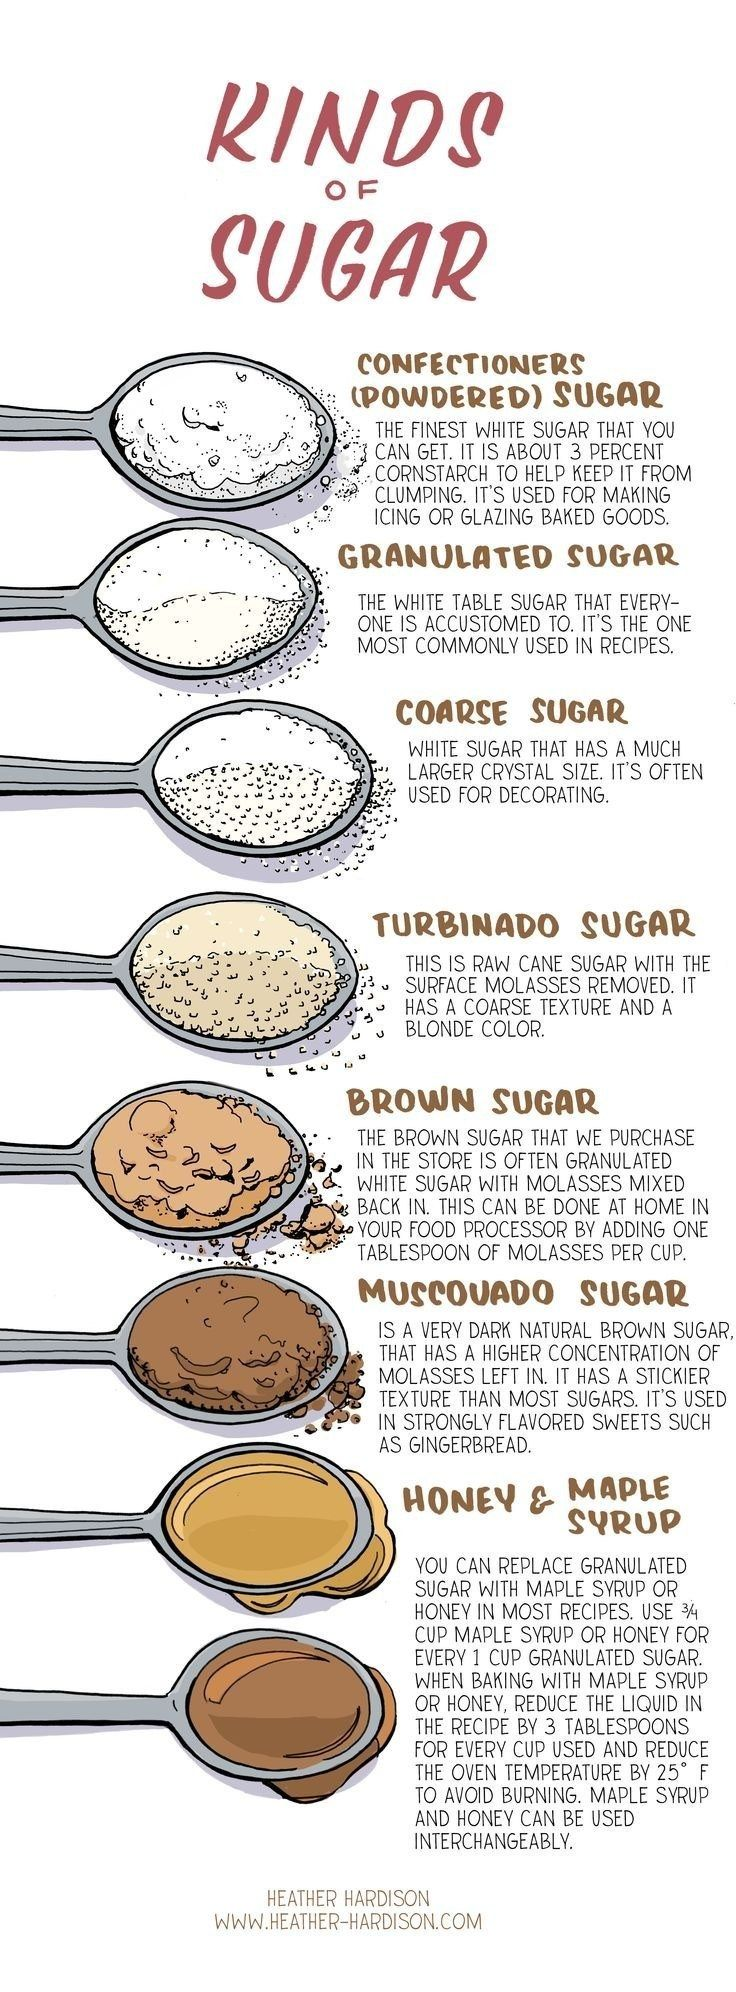 26 Awesome Baking Cheat Sheets That You'll Wonder How You Ever Lived Without - Kinds of Sugar Infographic